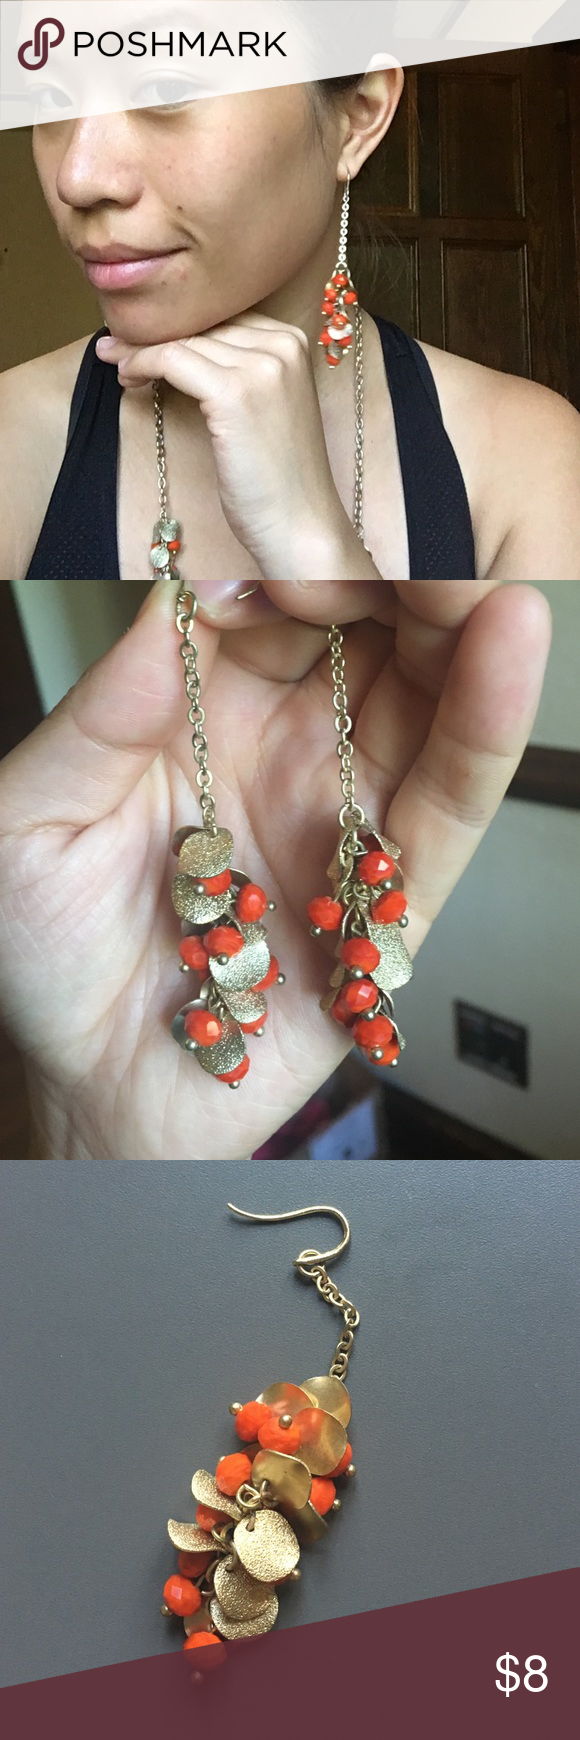 Dangly earrings The orange is a great pop of color. Elegant earrings that you can bundle with the matching necklace! Macy's Jewelry Earrings